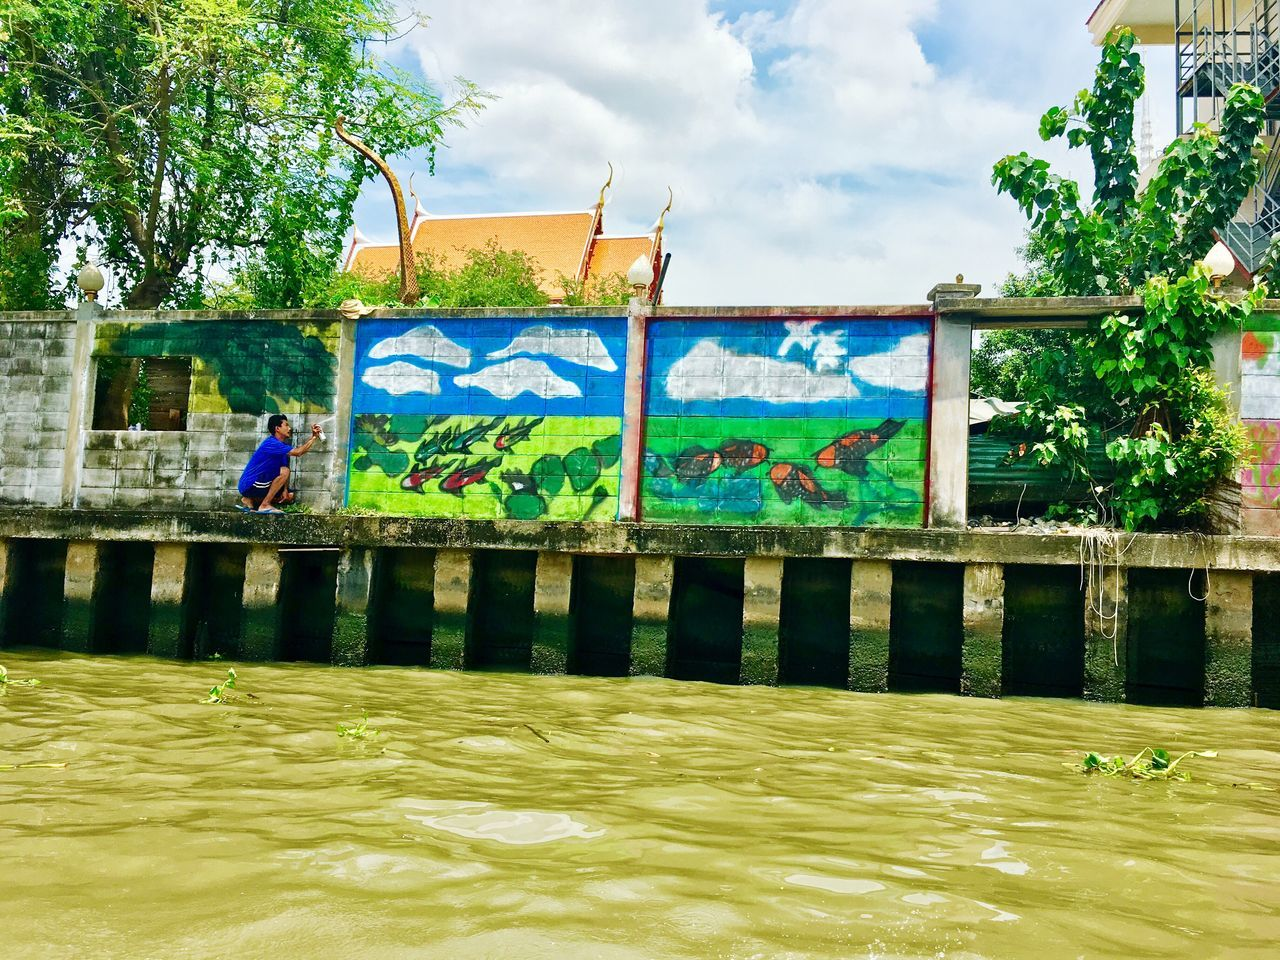 Riverside Graffiti. Graffiti Graffiti Art Graffiti Wall Travelphotogrqphy Riverbank Chaophraya River River Mobilephotography Bangkok Thailand BKK2016 Travelphotography Thailandtravel Thailand2016 Streetphotography Art Creativity Art And Craft Water